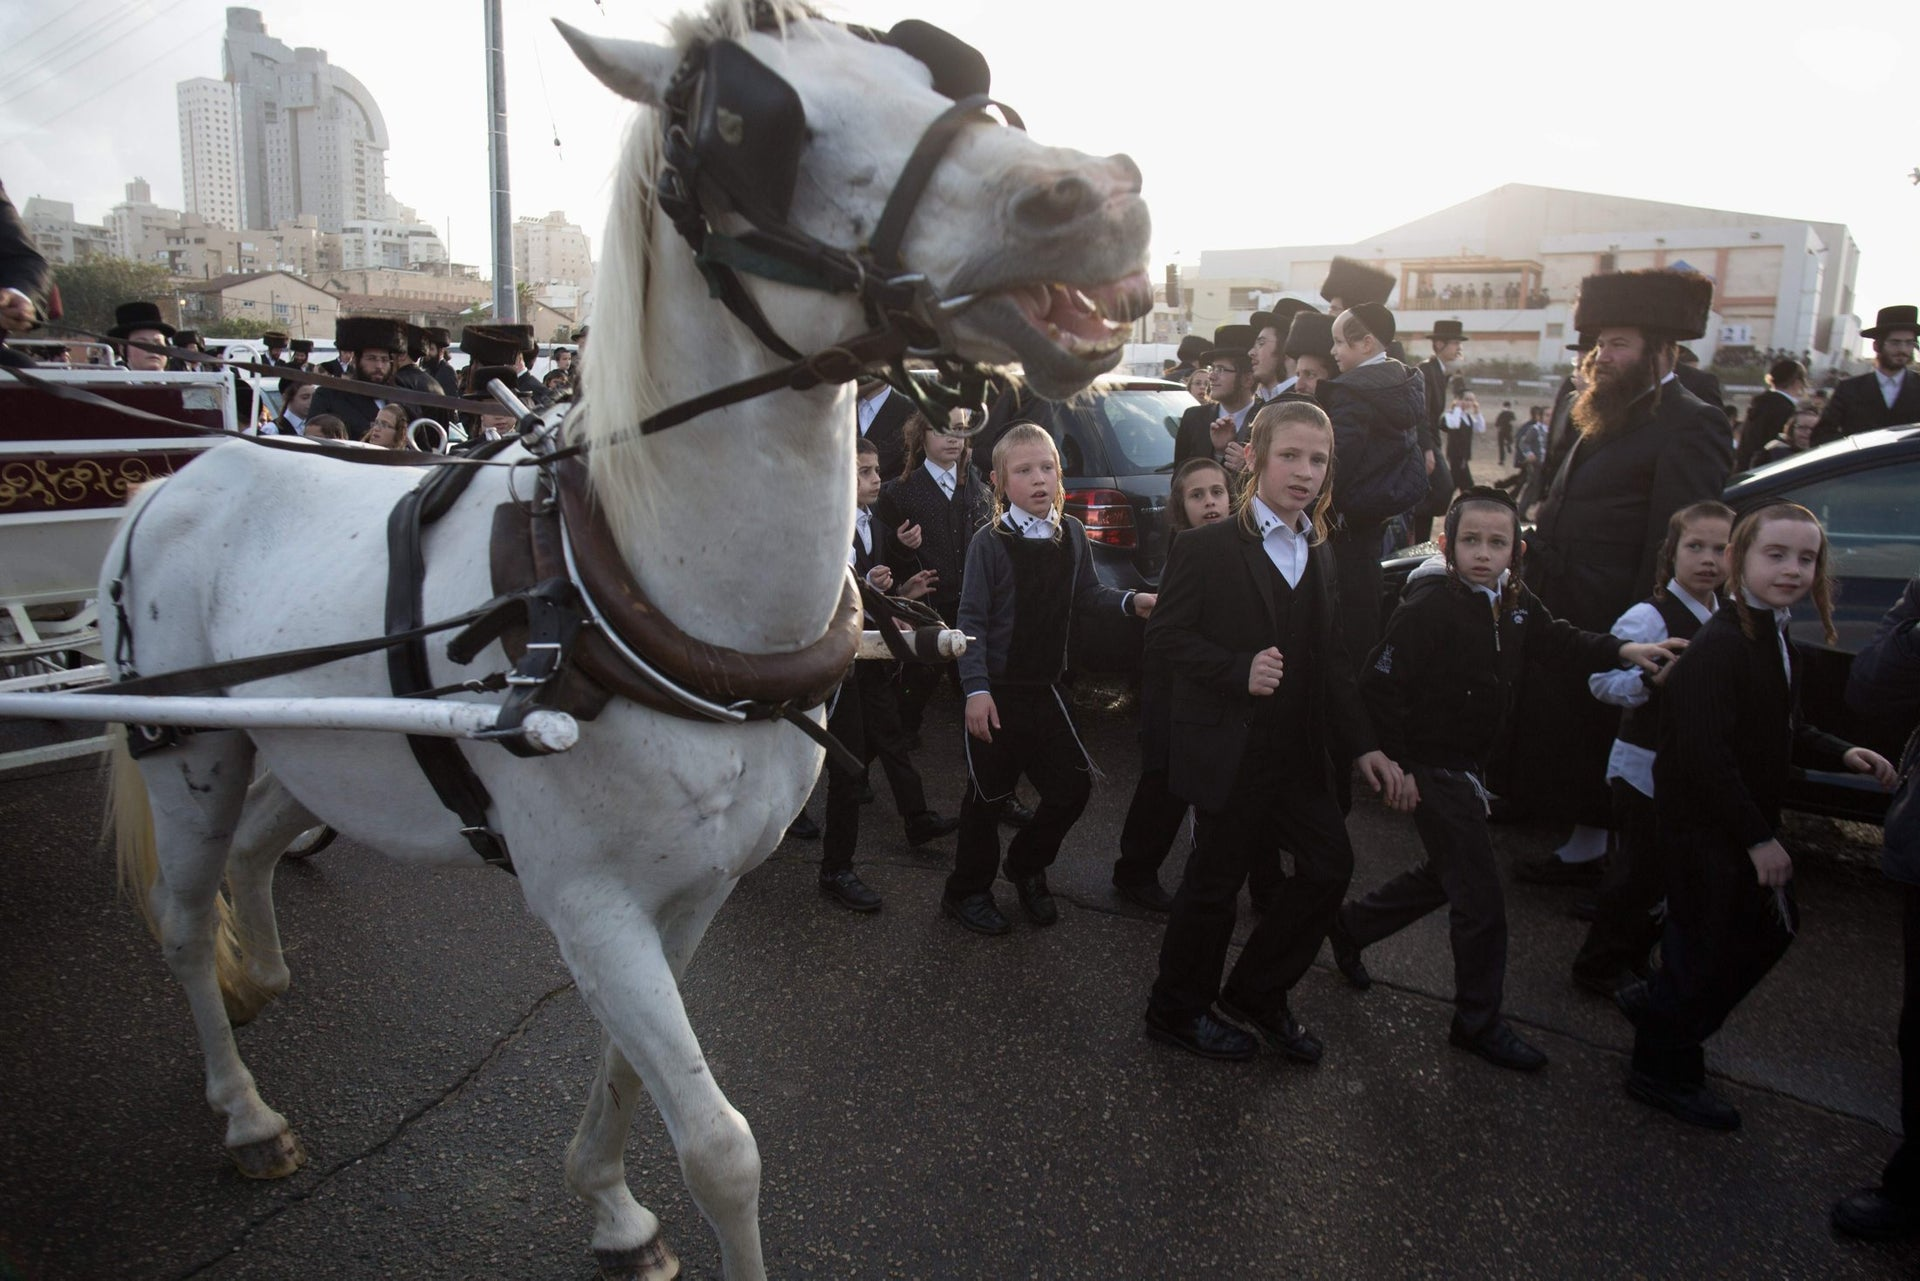 Ultra-Orthodox Jewish children run next to a horse-drawn carriage carrying Natan Meir Neta Hilbershtam, the groom from the Tzanz Hasidic dynasty, before his wedding with Parowol Mirel Lamber from the Toldos Avrohon Yitzchok Hasidic dynasty, on March 15, 2016, in the Israeli central city of Netanya.